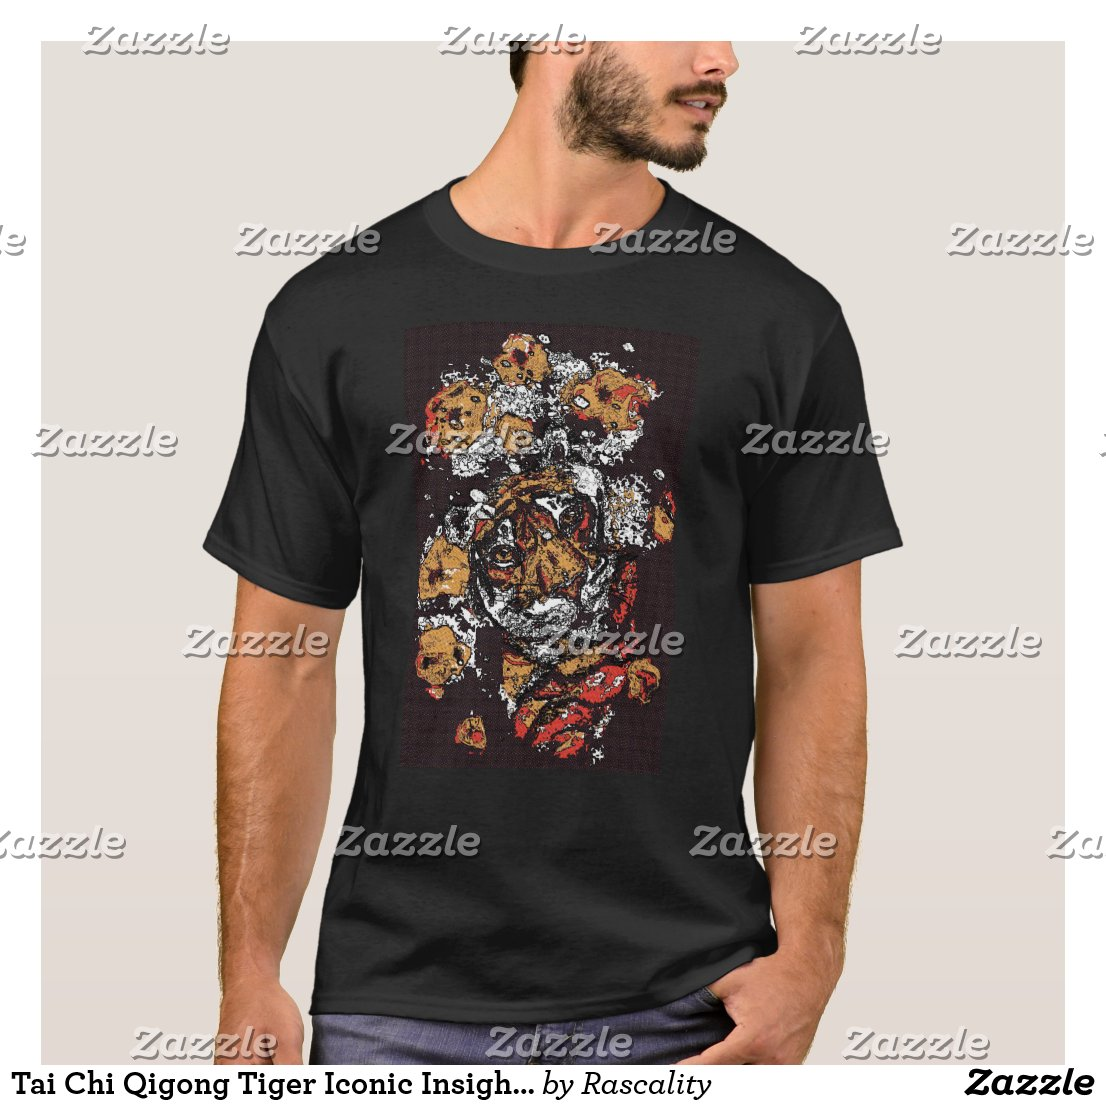 ' Tai Chi Tiger Iconic Insight Golden Browns T-Shirt